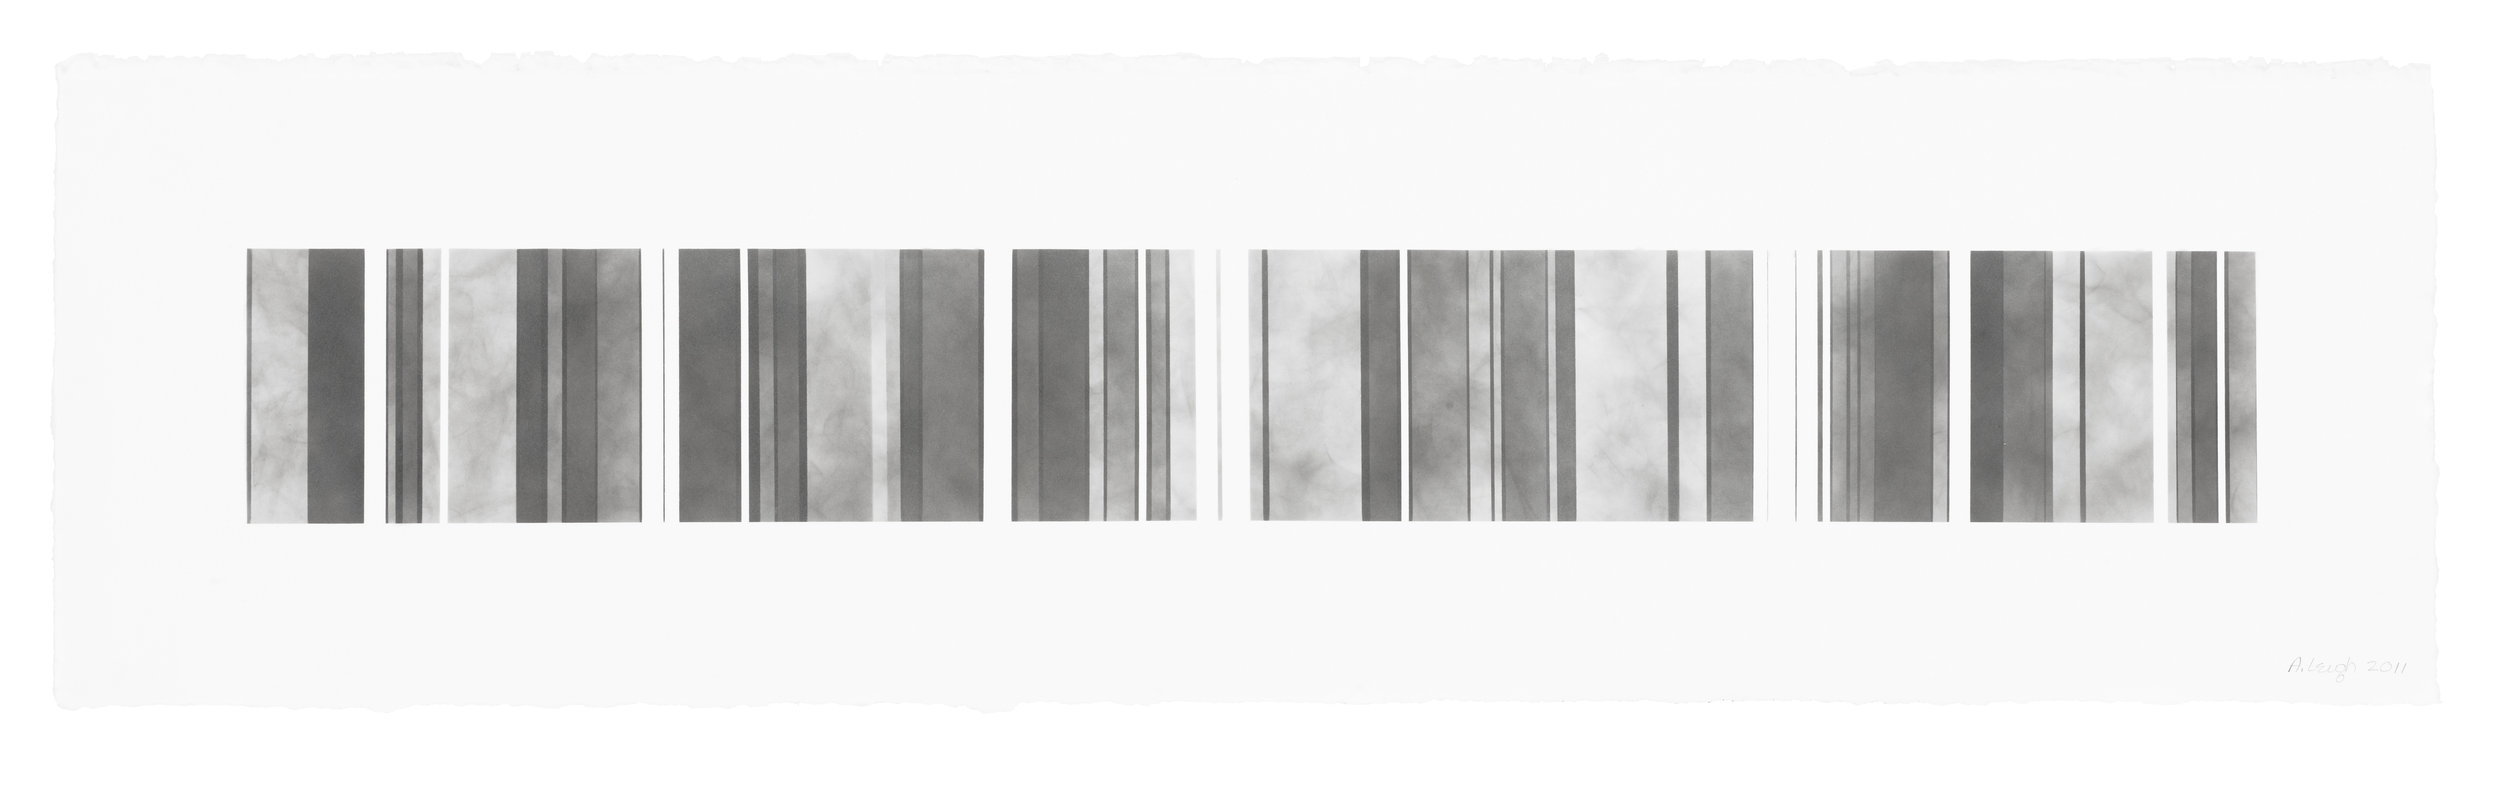 Barcode Series B 16, smoke on  paper, 11 by 40.5 inches, 2013